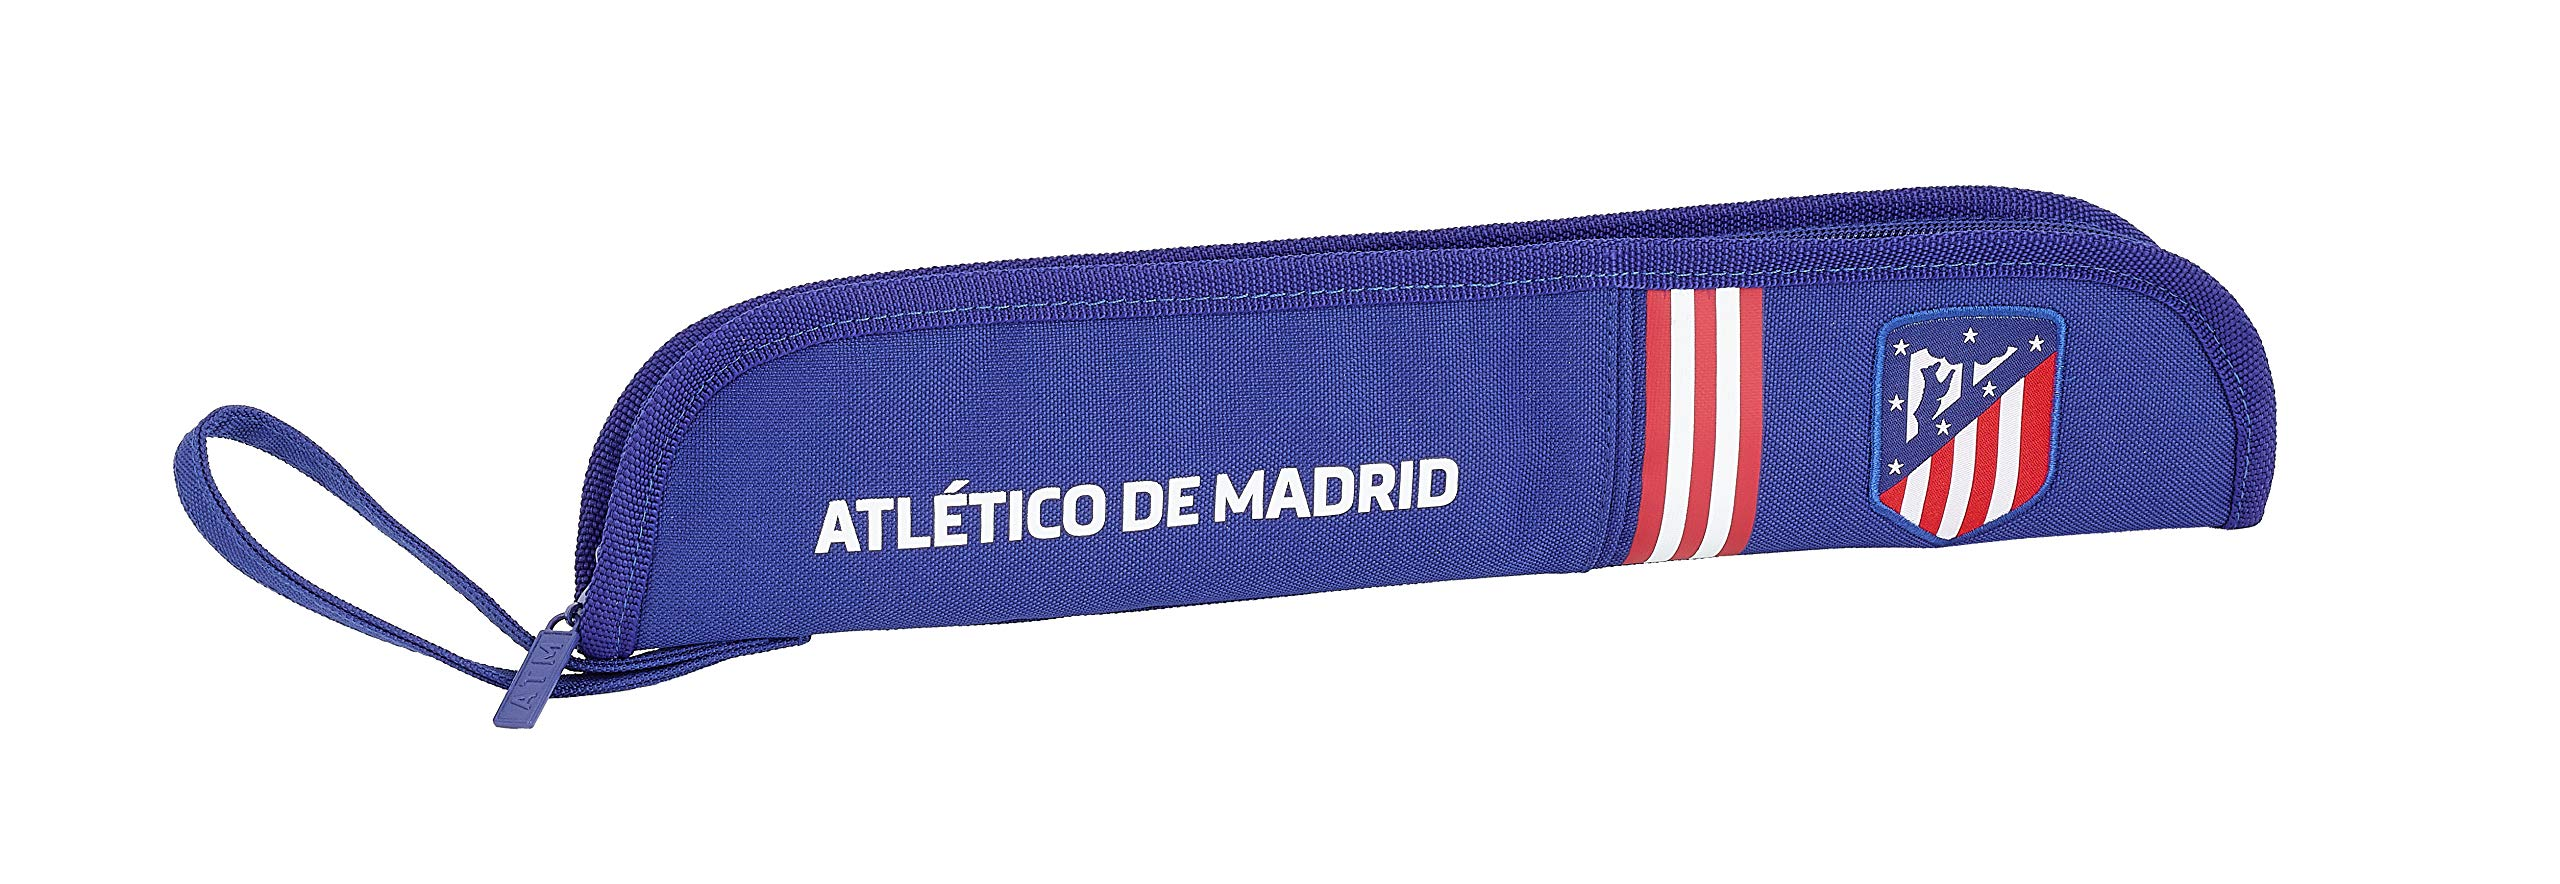 Atlético de Madrid «In Blue» Oficial Portaflautas 370x20x80mm